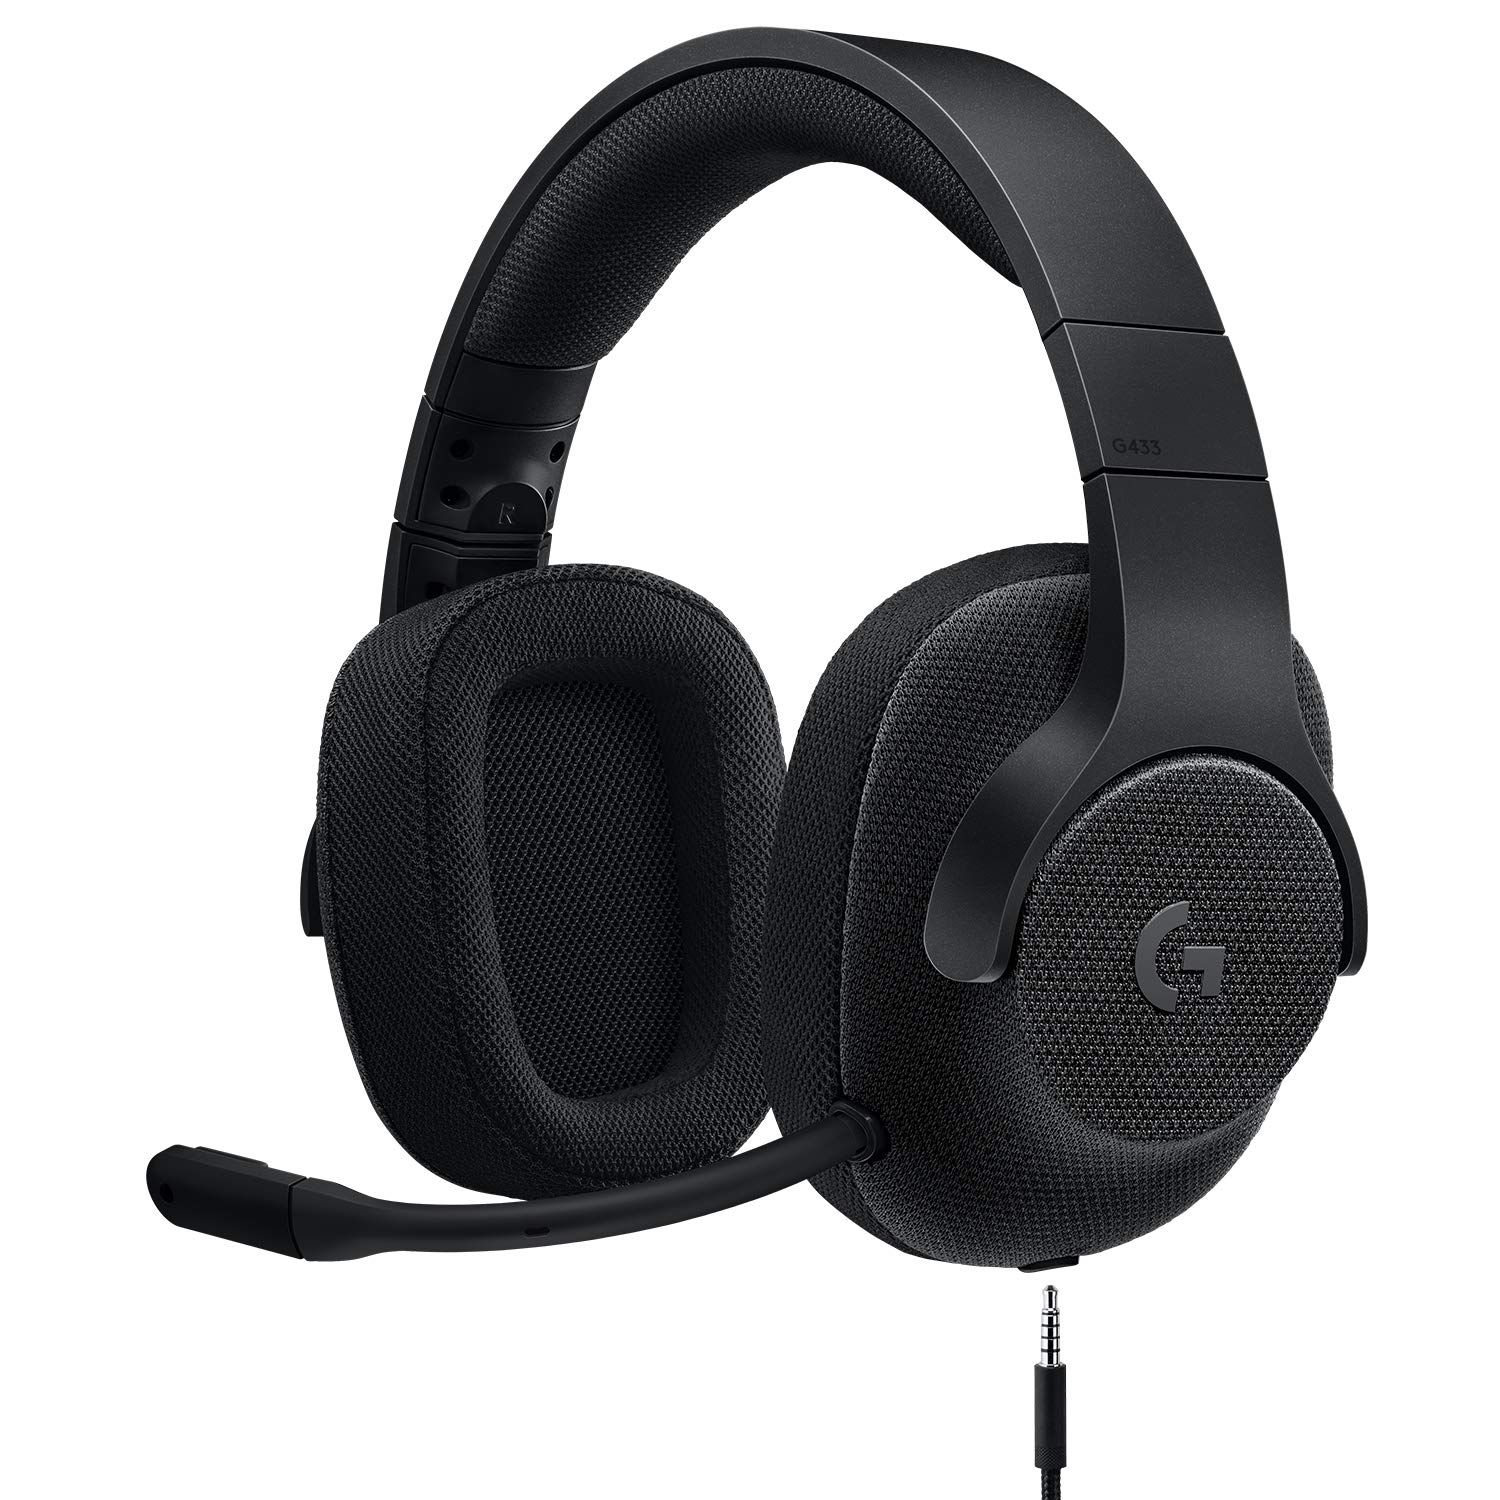 Logitech G433 7.1 Wired Gaming Headset with DTS Headphone: X 7.1 Surround for PC, PS4, PS4 PRO, Xbox One, Xbox One S, Nintendo Switch - Triple Black by Logitech G